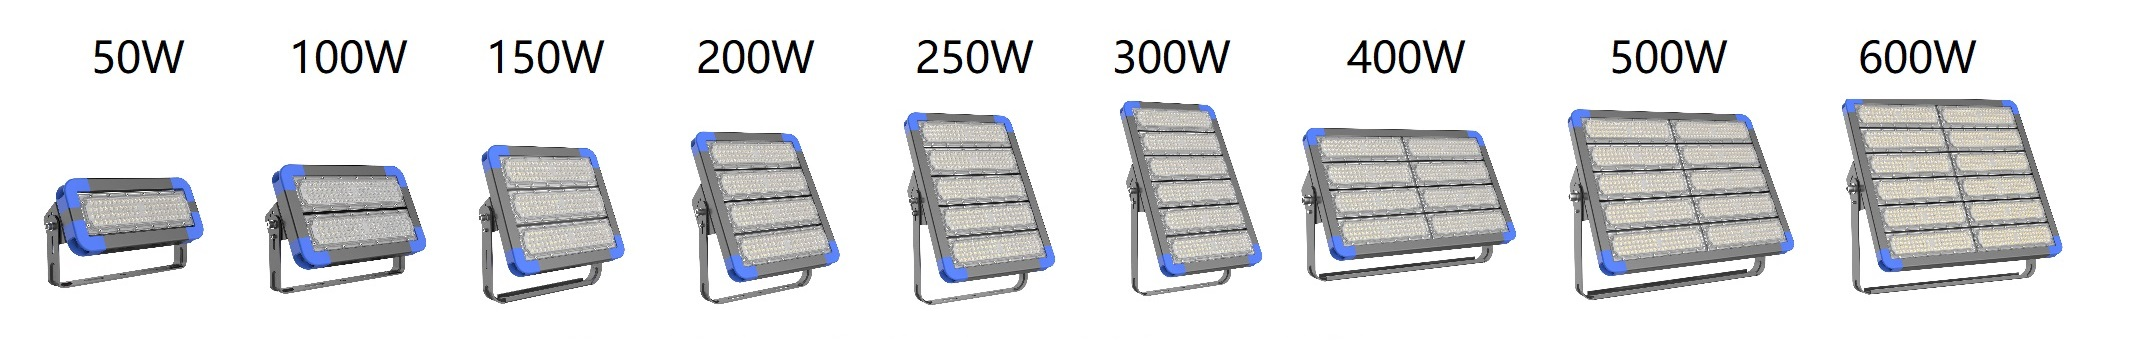 50-600W LED Tunnel light or floodlight_COMI LIGHTING_0